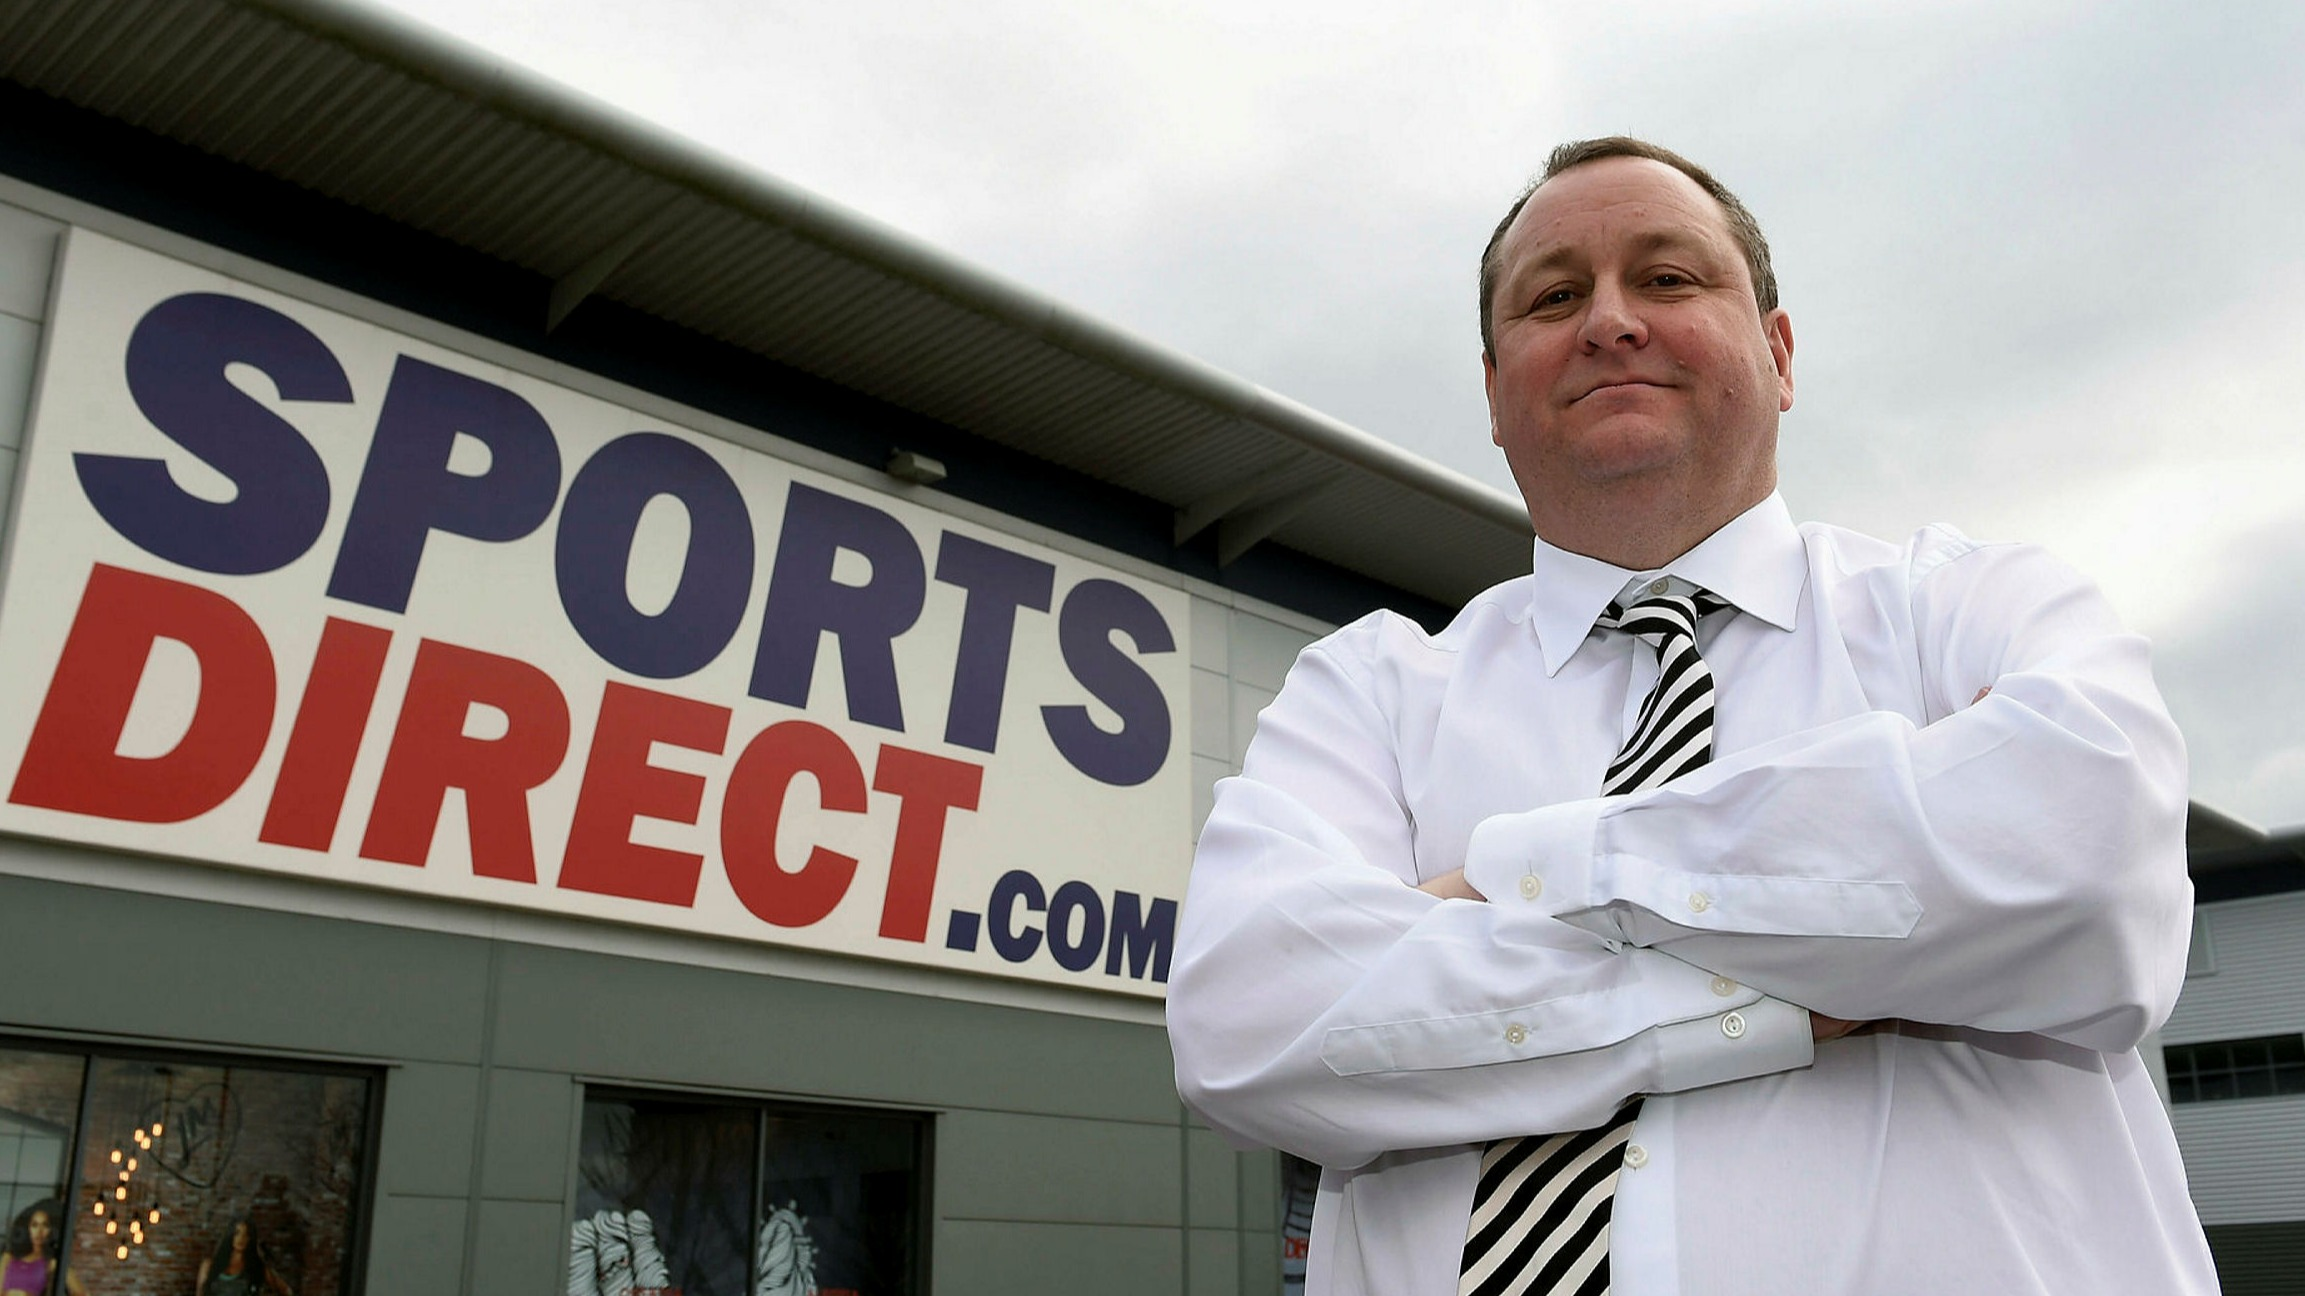 Sports Direct S Mike Ashley Apologises For Coronavirus Response Financial Times ⚽️🏉🏏🎾🏀🥊 link in bio ⤵️ lnk.bio/xg9a. sports direct s mike ashley apologises